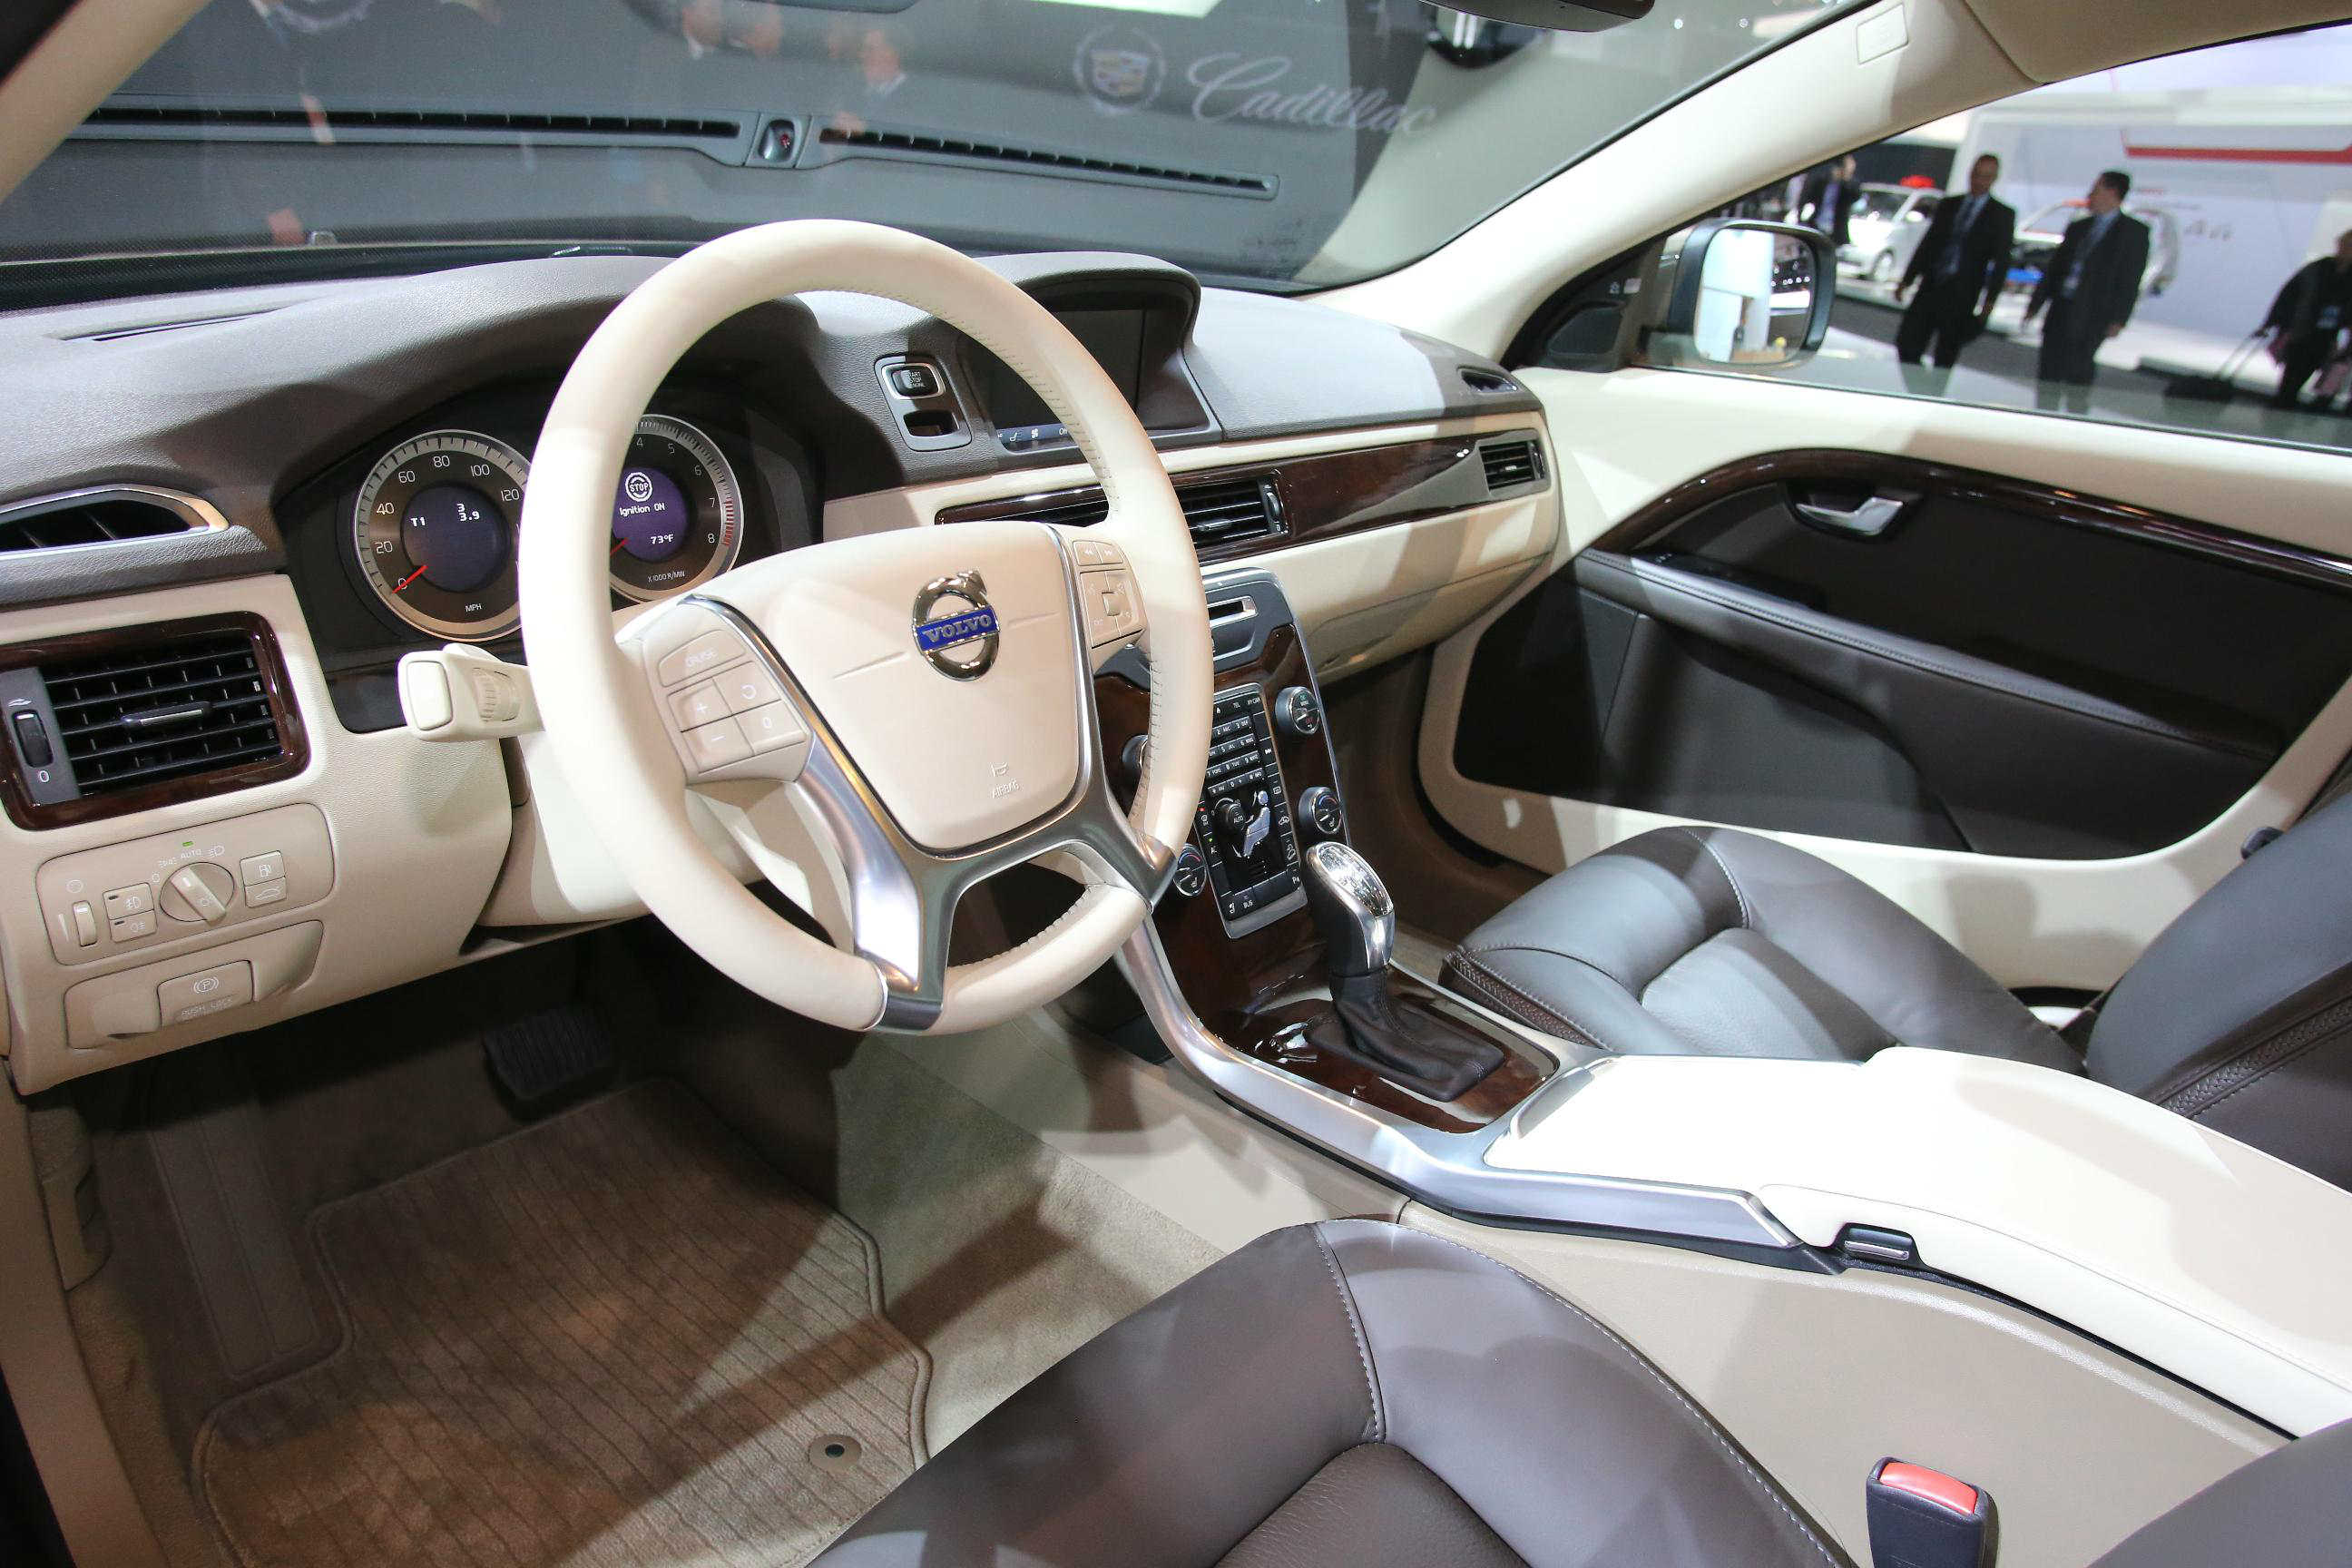 image of a volvo xc70 car interior